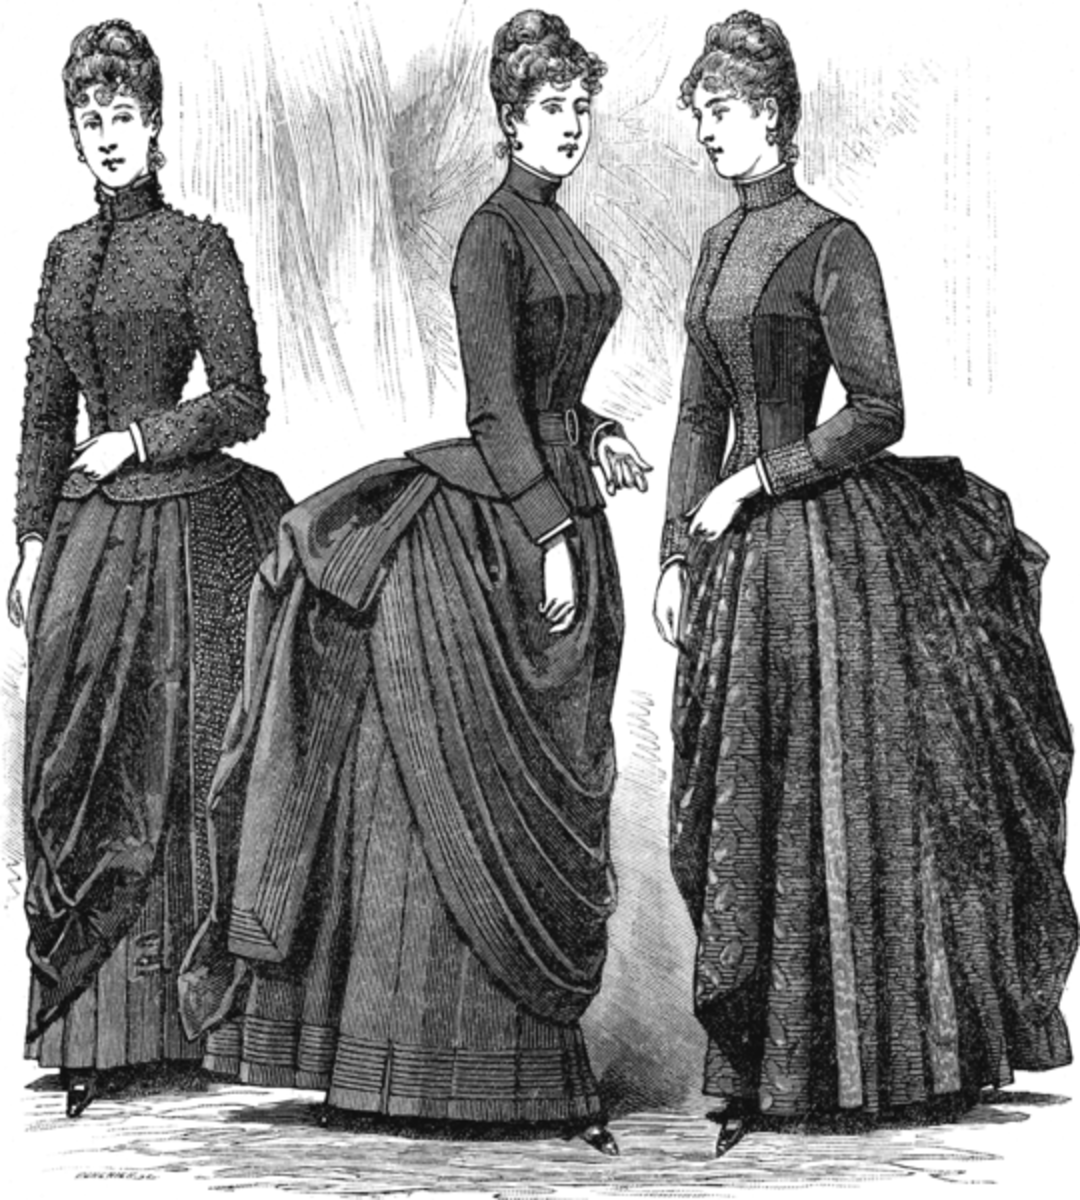 French women of the Victorian Era years, dressed similarly to English Women: corsets, bustles, heavy long skirts, many petticoats.